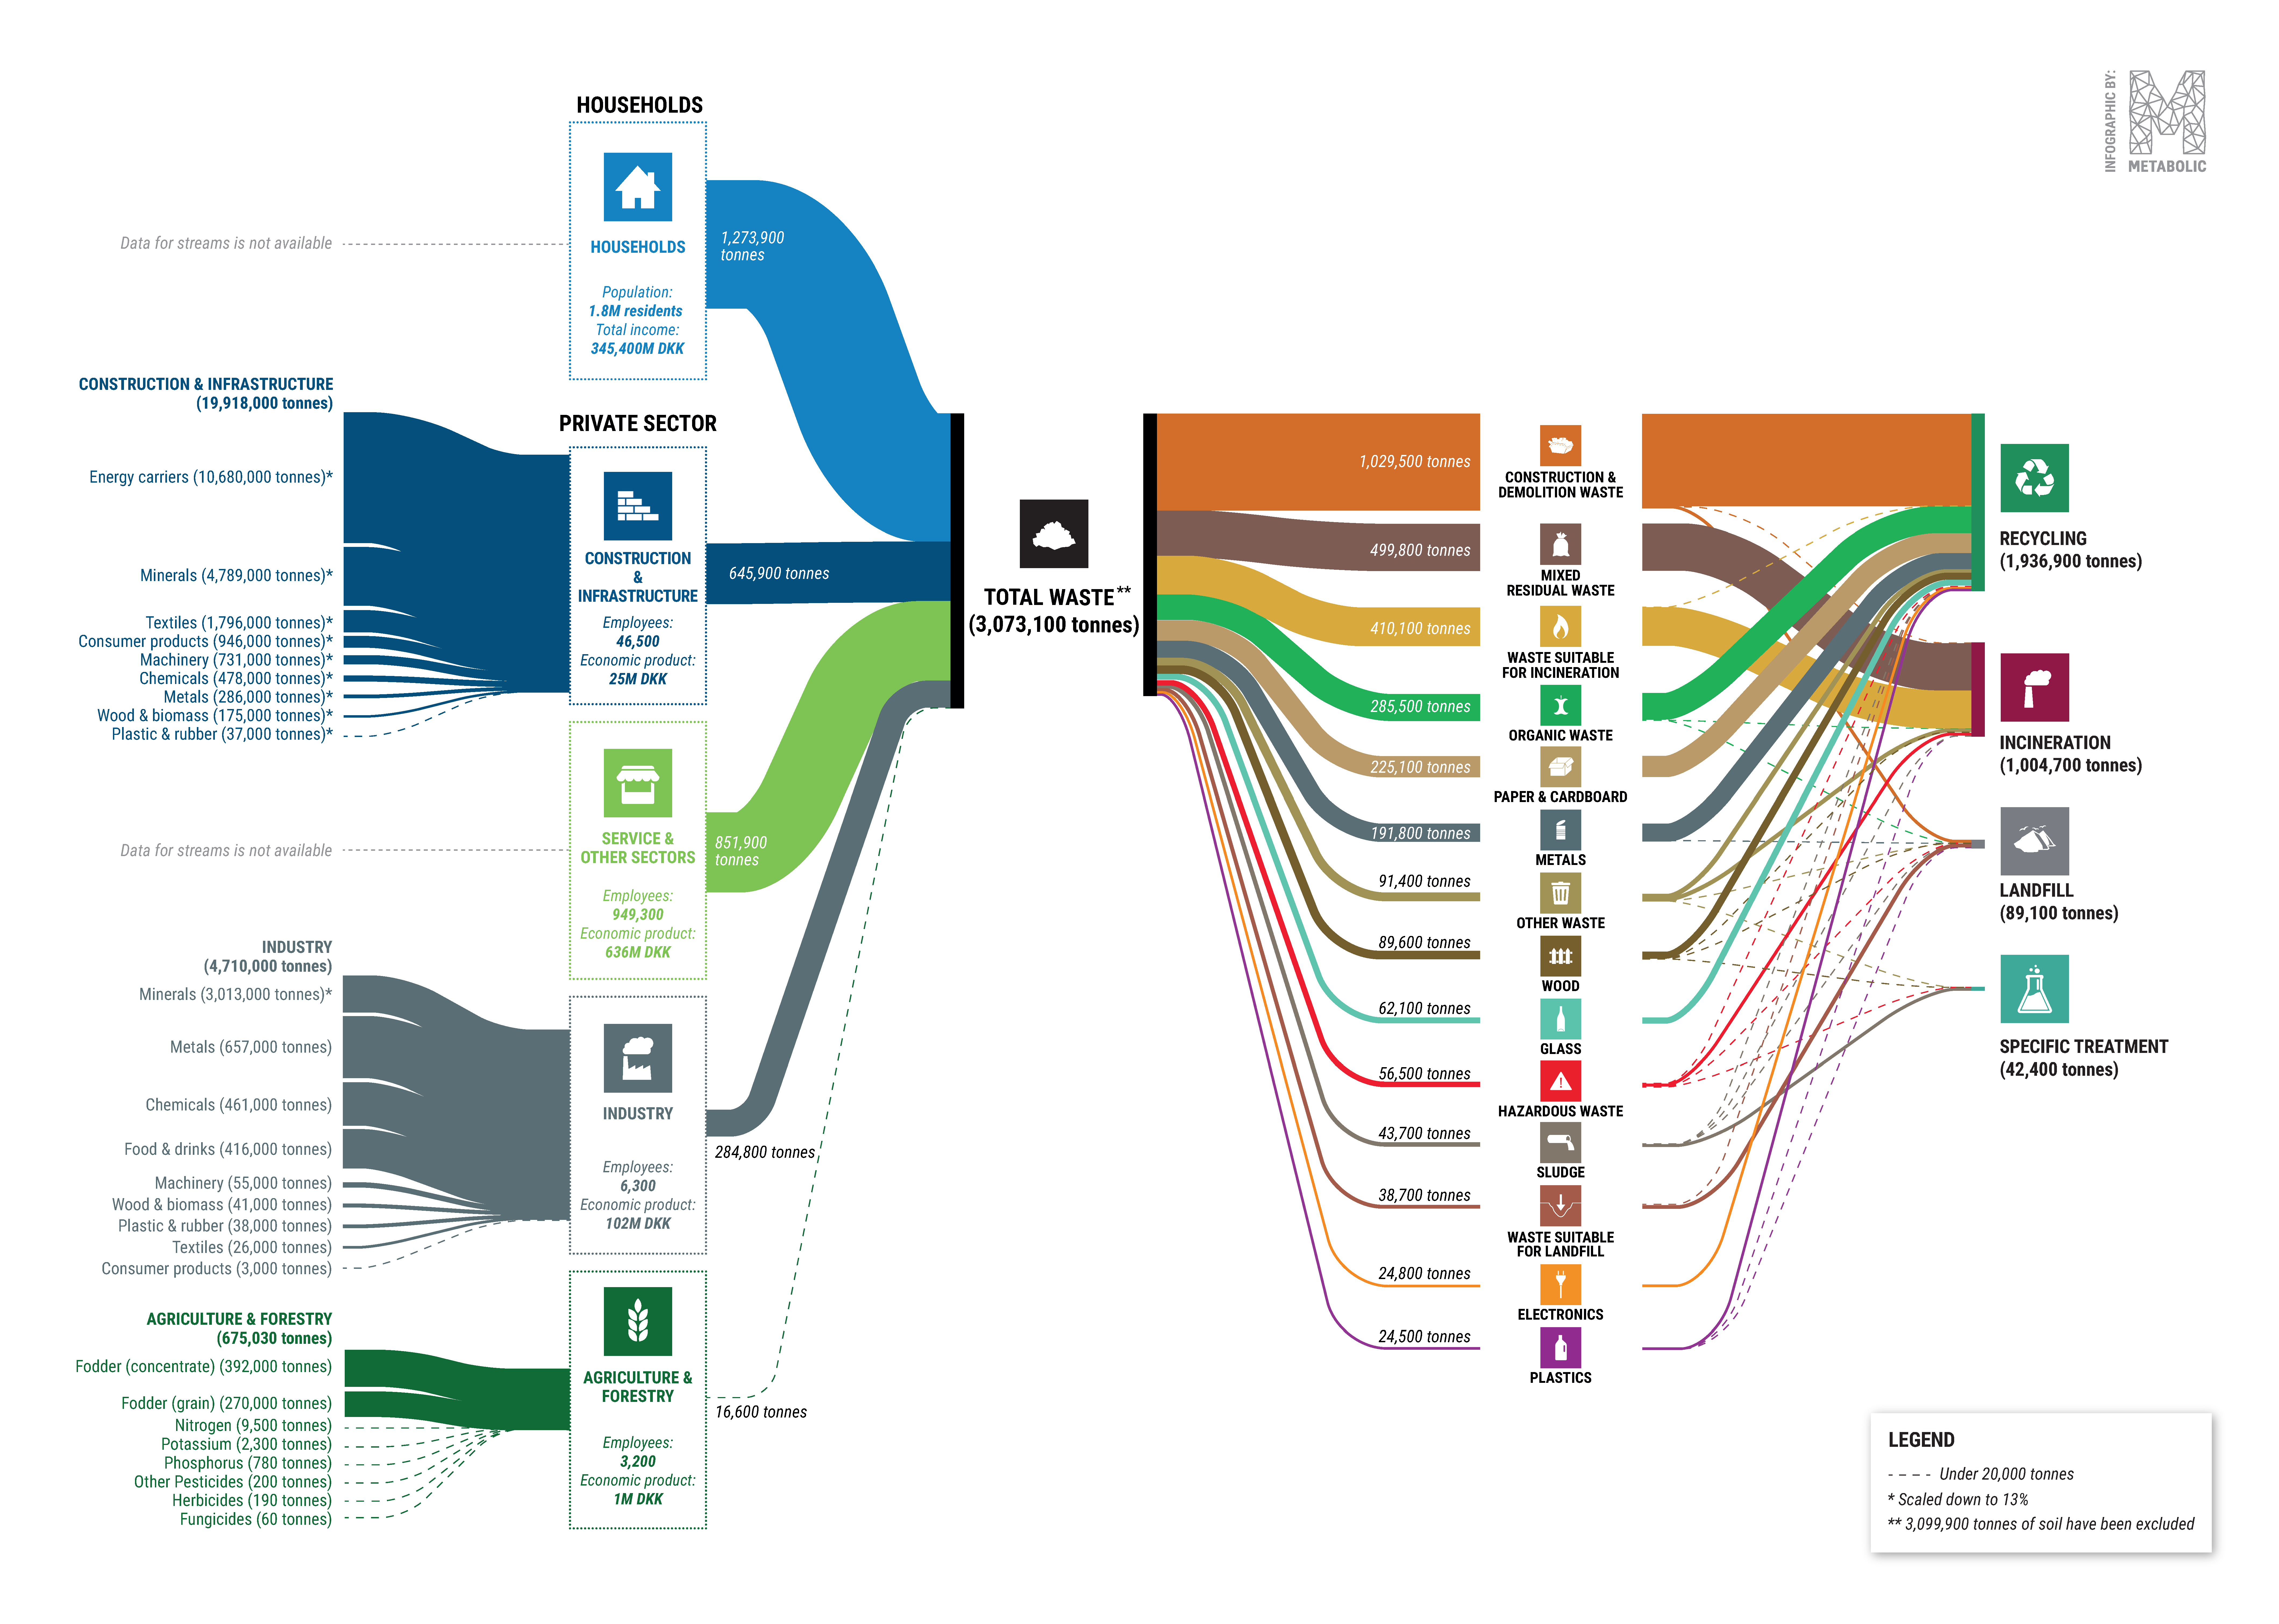 Sankey diagram of waste streams in the Capital Region and inlet streams for construction, industry and agriculture. 2016, tonnes.